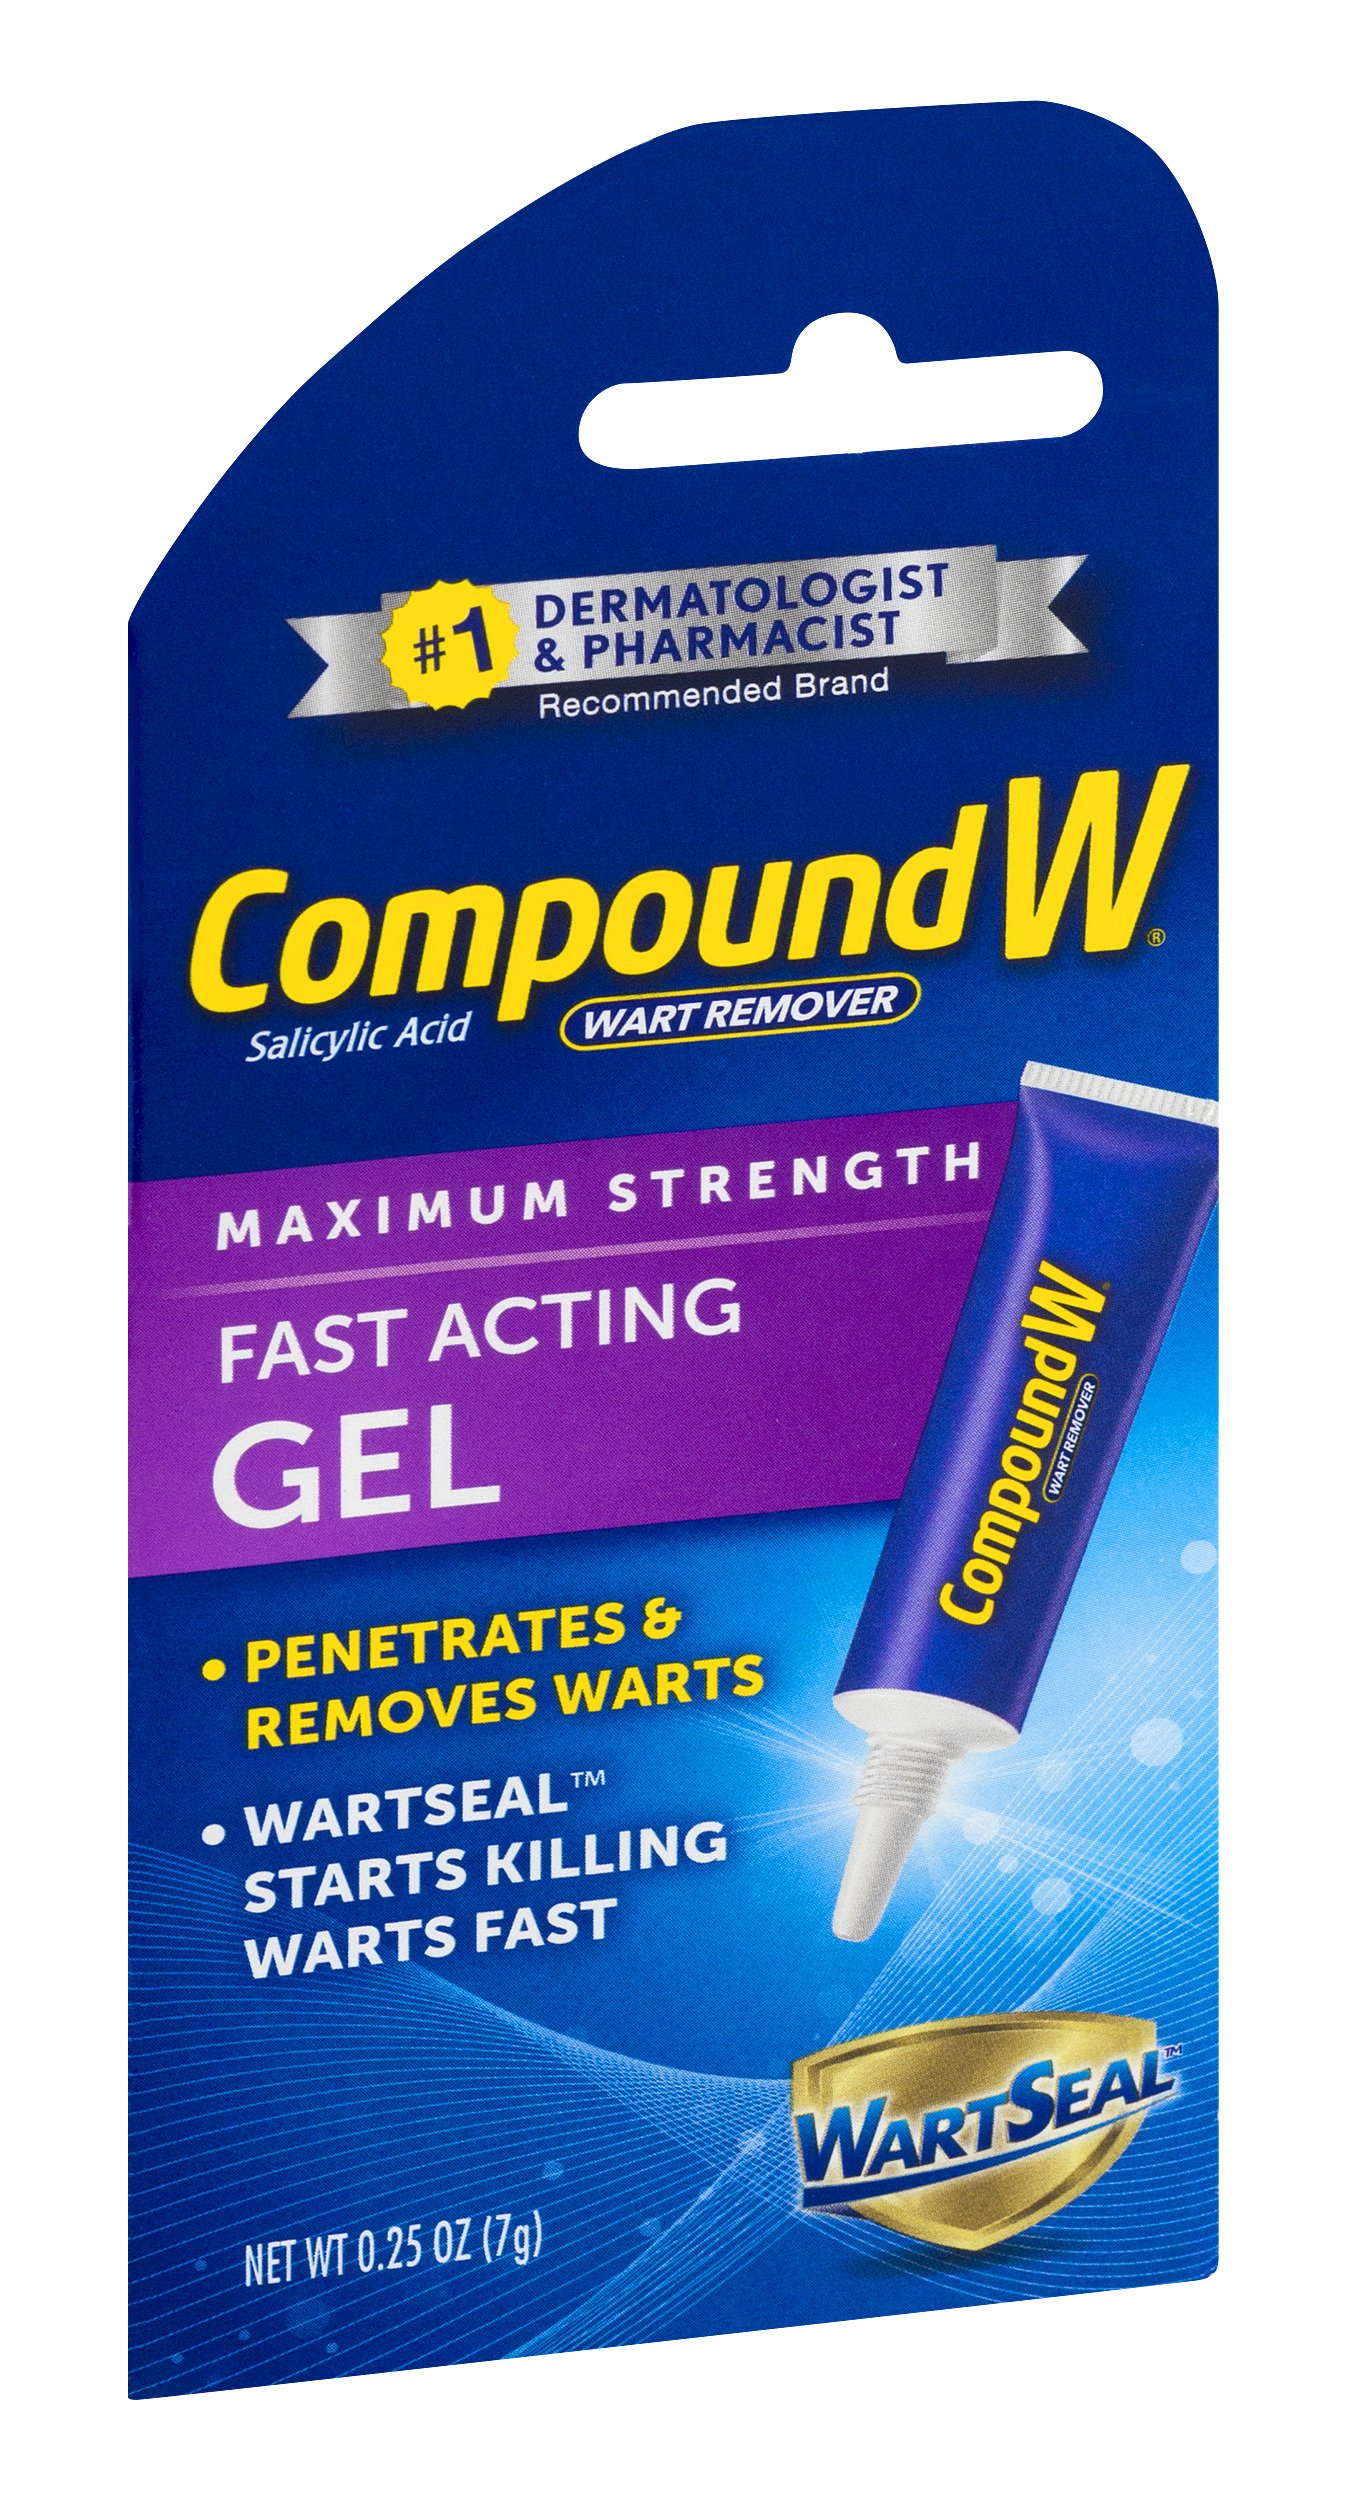 Compound W Salicylic Acid Wart Remover | Maximum Strength Fast Acting Gel | 0.25 oz | (Value Pack of 2) by Compound W (Image #3)